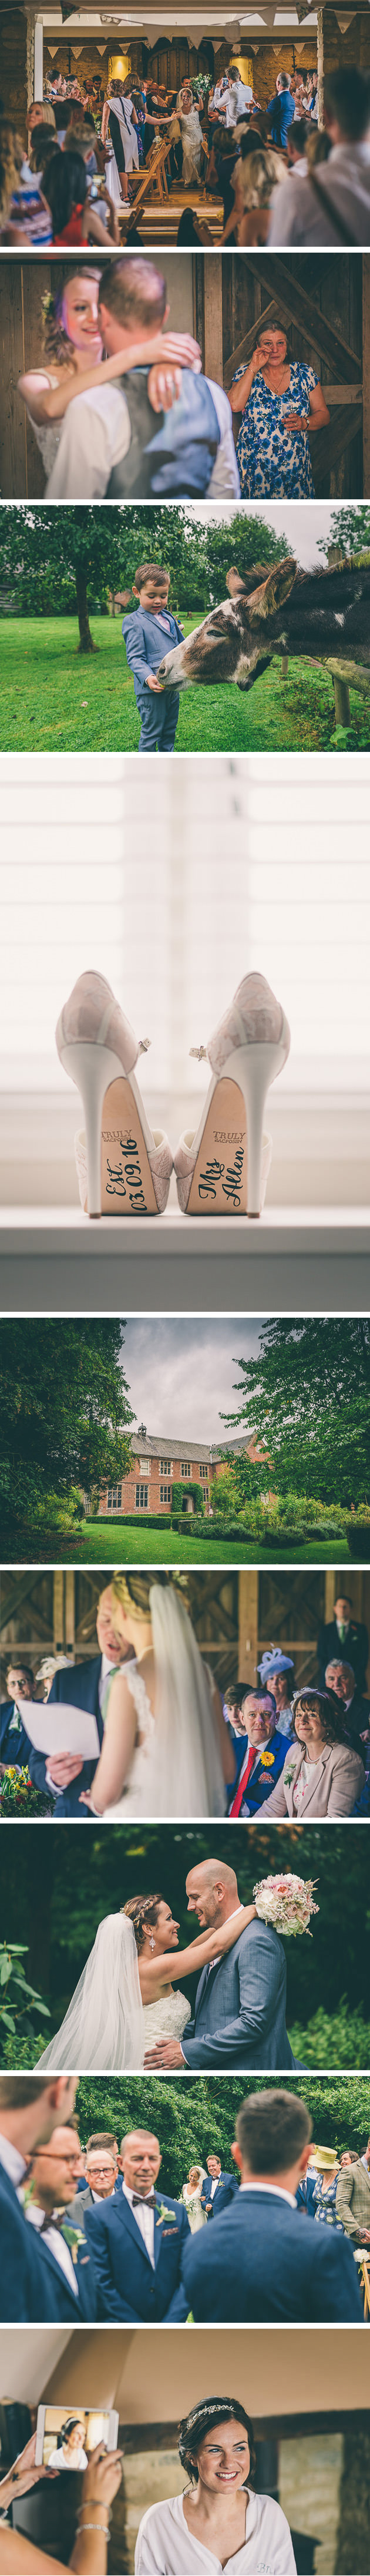 Wedding Shoes on Window